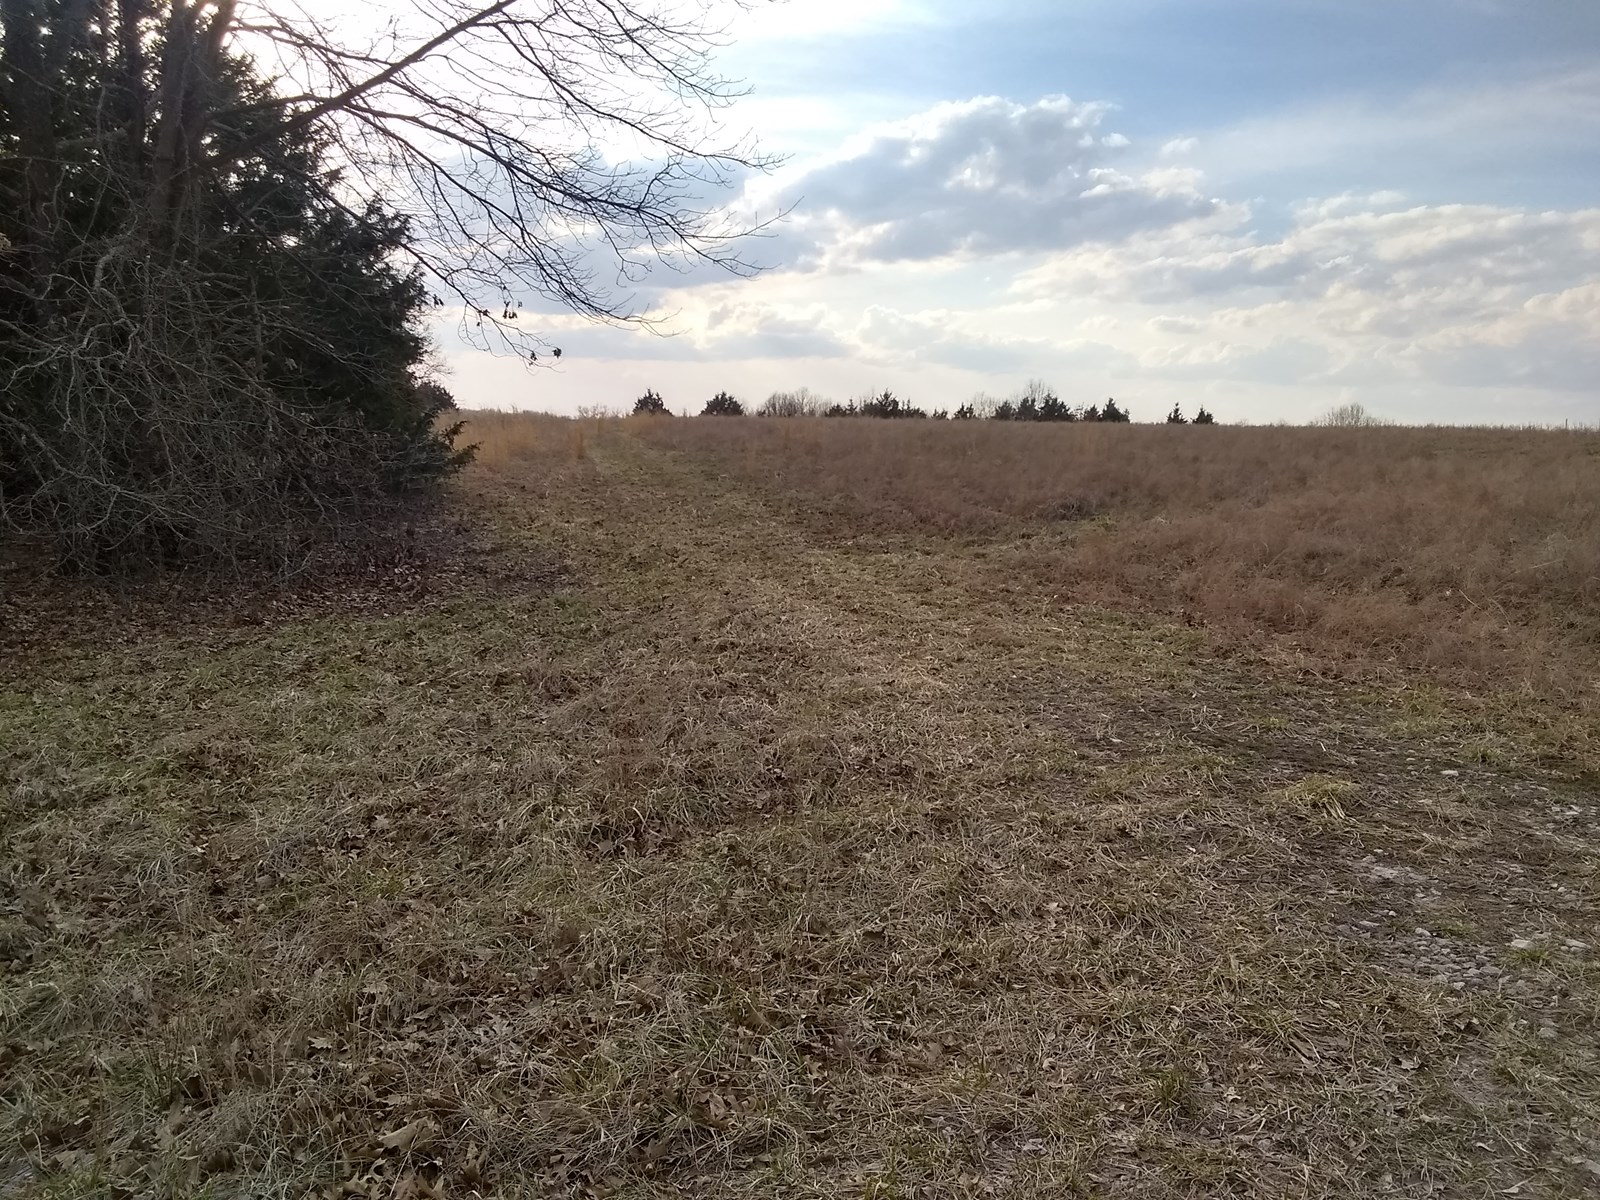 31 acres, hunting property or build your dream home